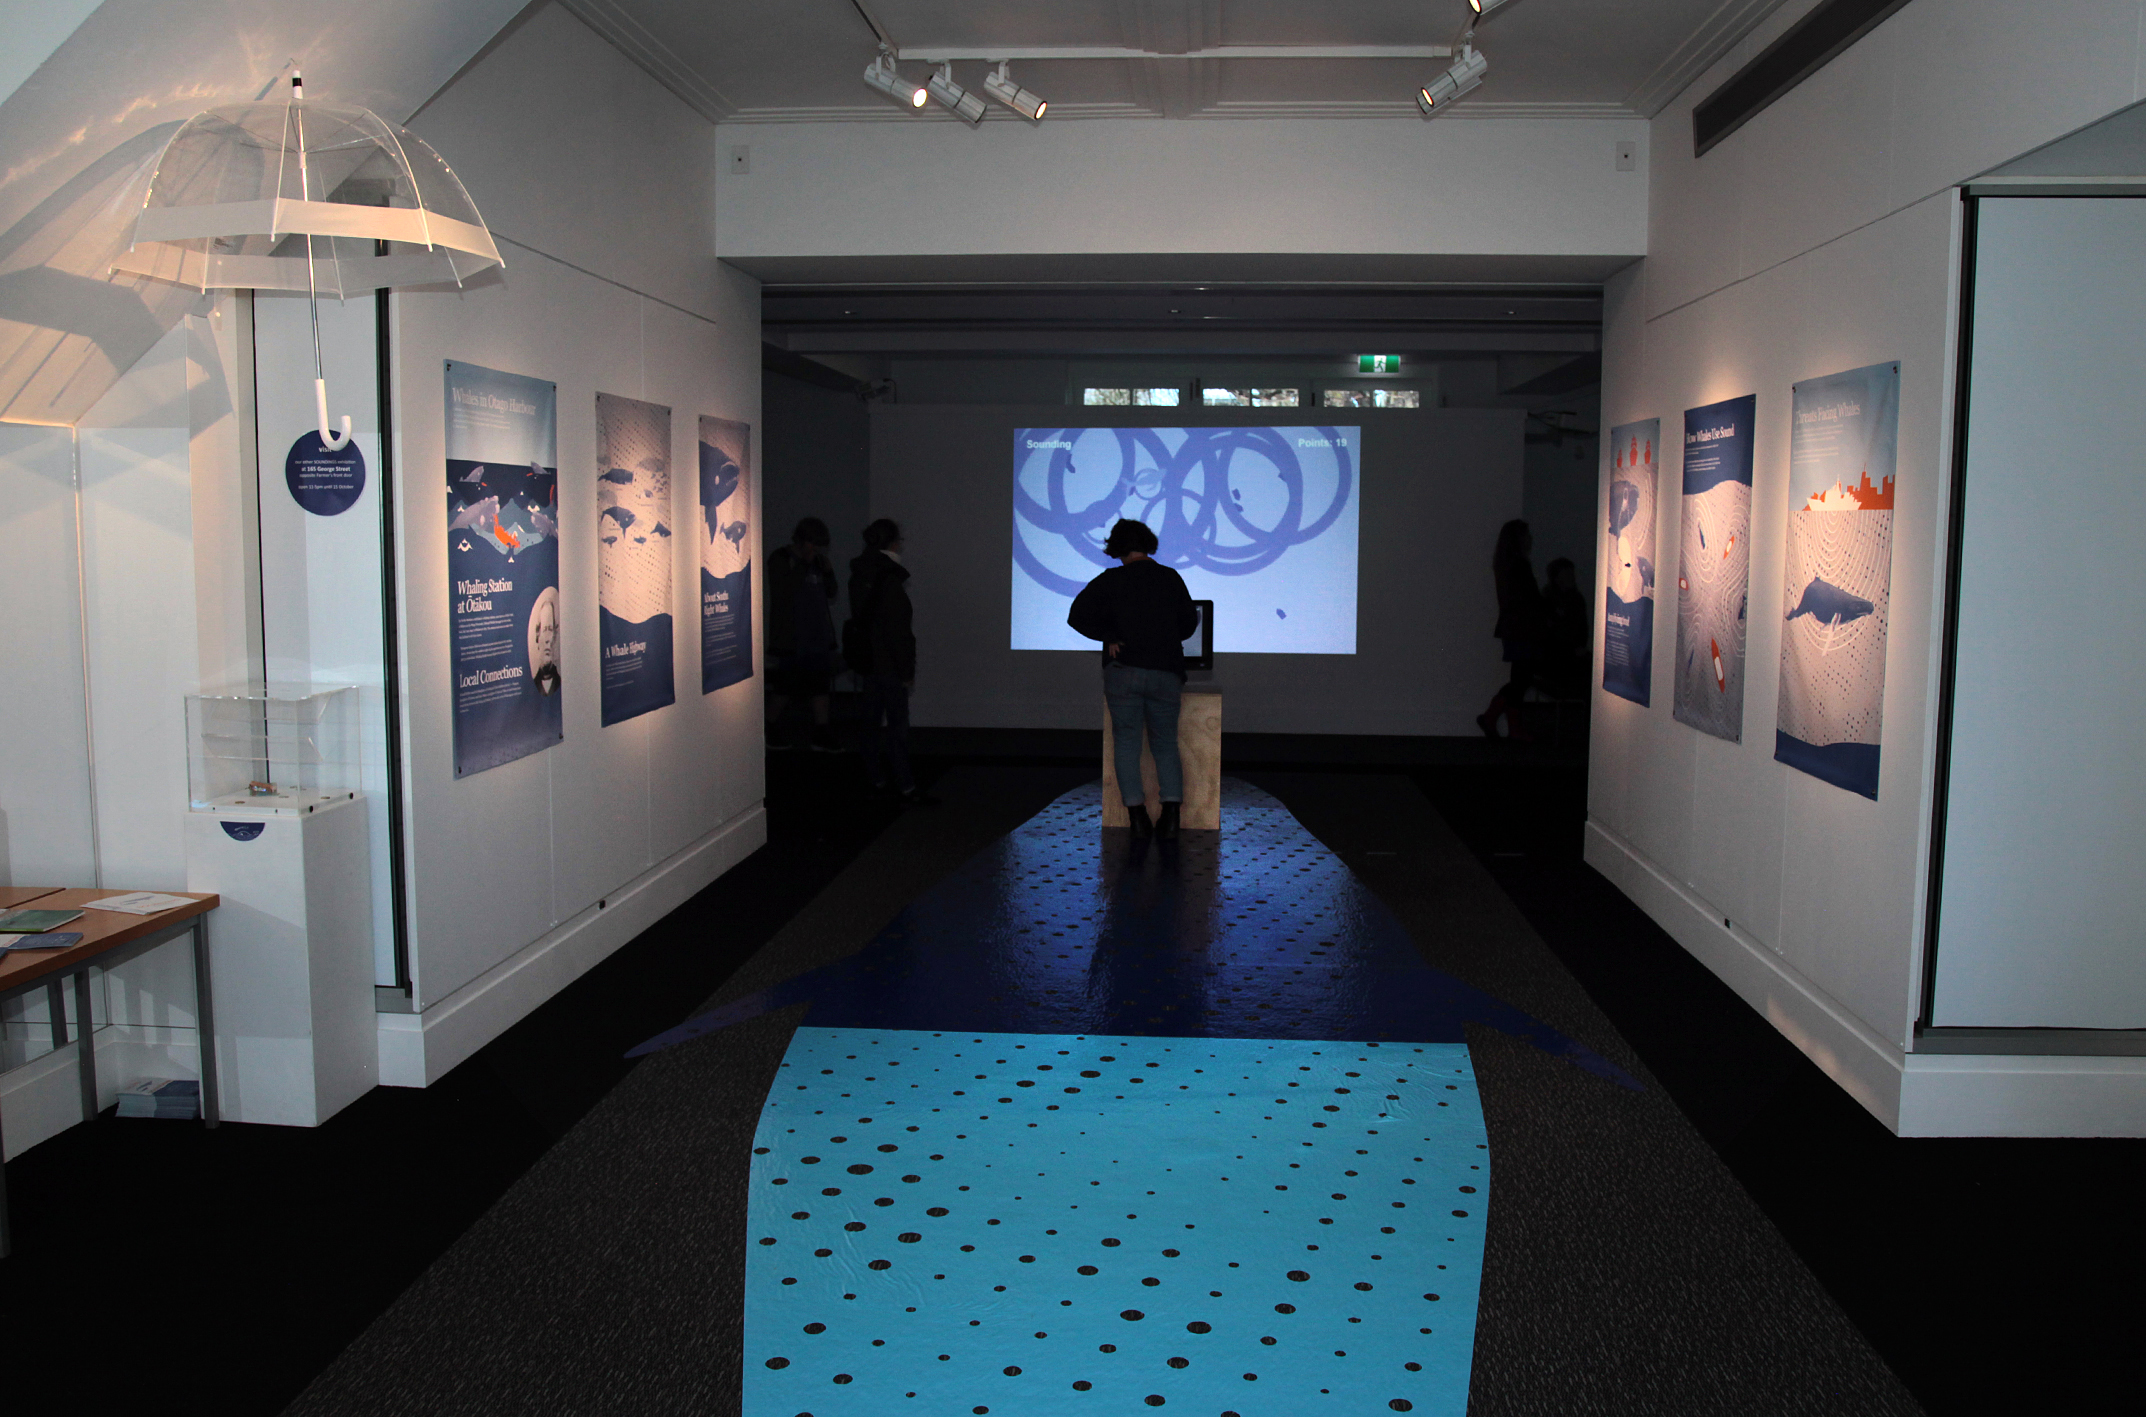 Gallery interior showing vinyl didactics and a video game